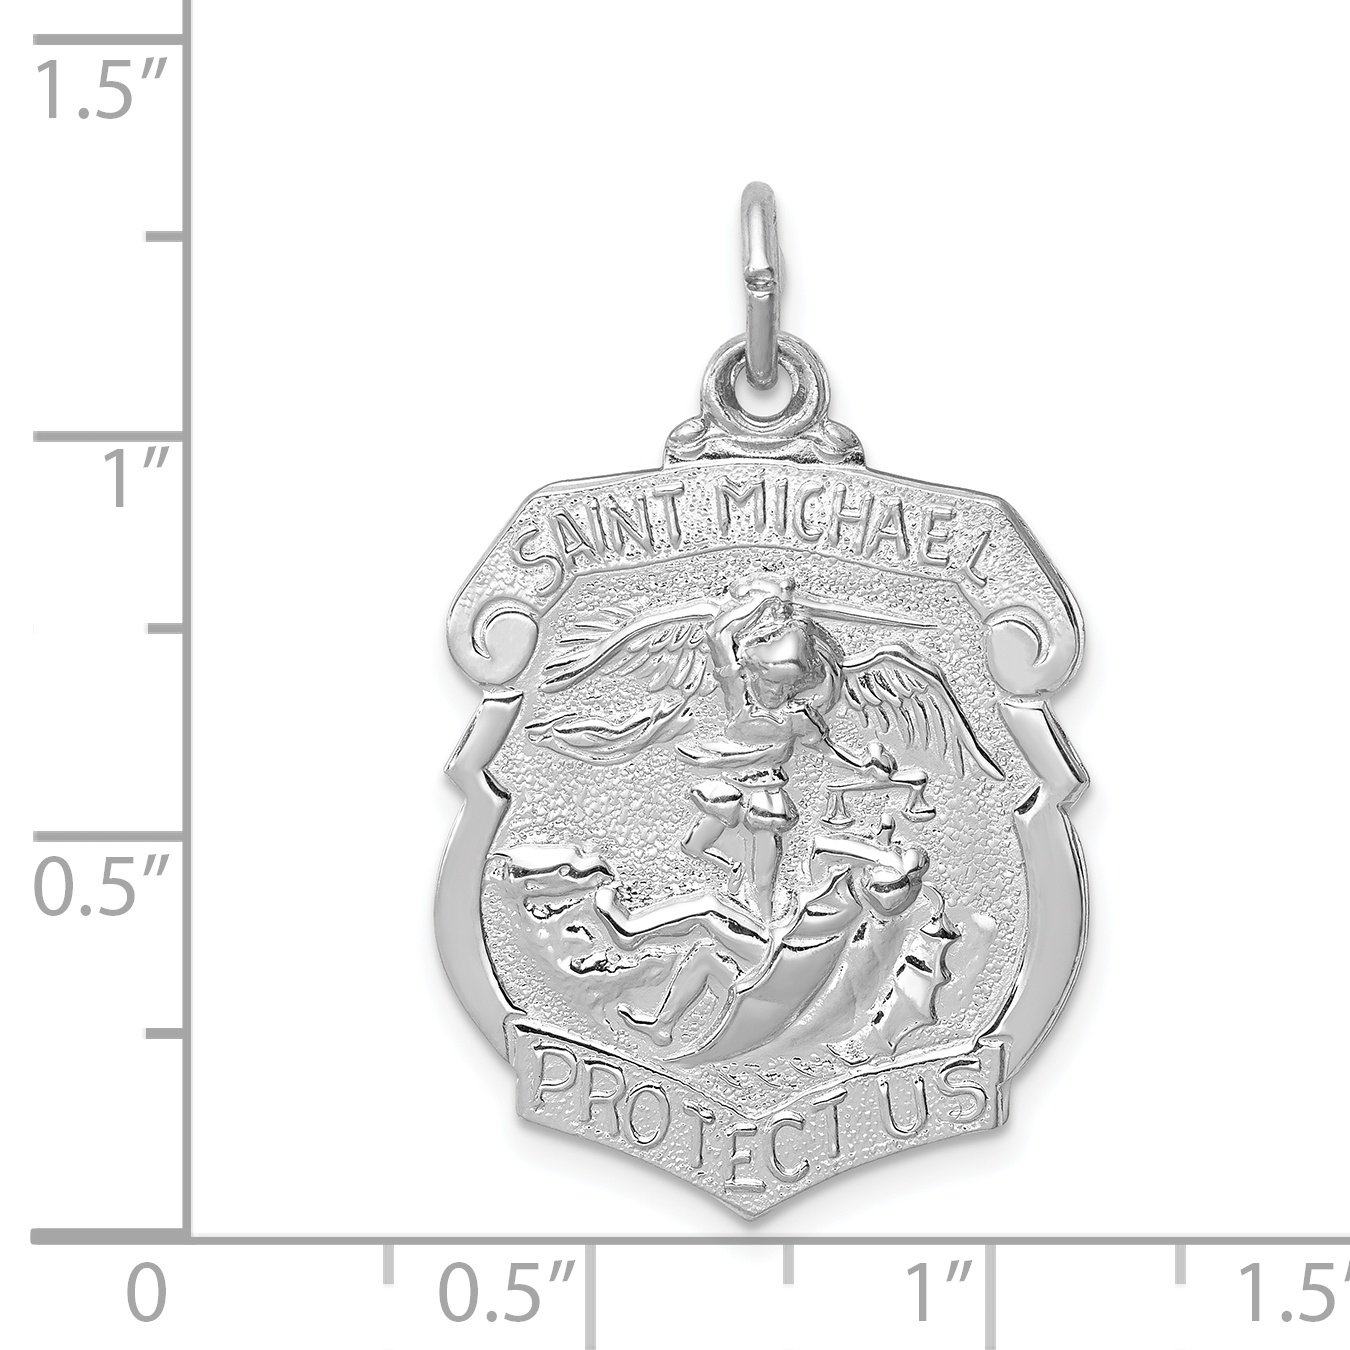 Sterling Silver Themed Jewelry Pendants /& Charms Solid 15 mm 22 mm St Michael Badge Medal